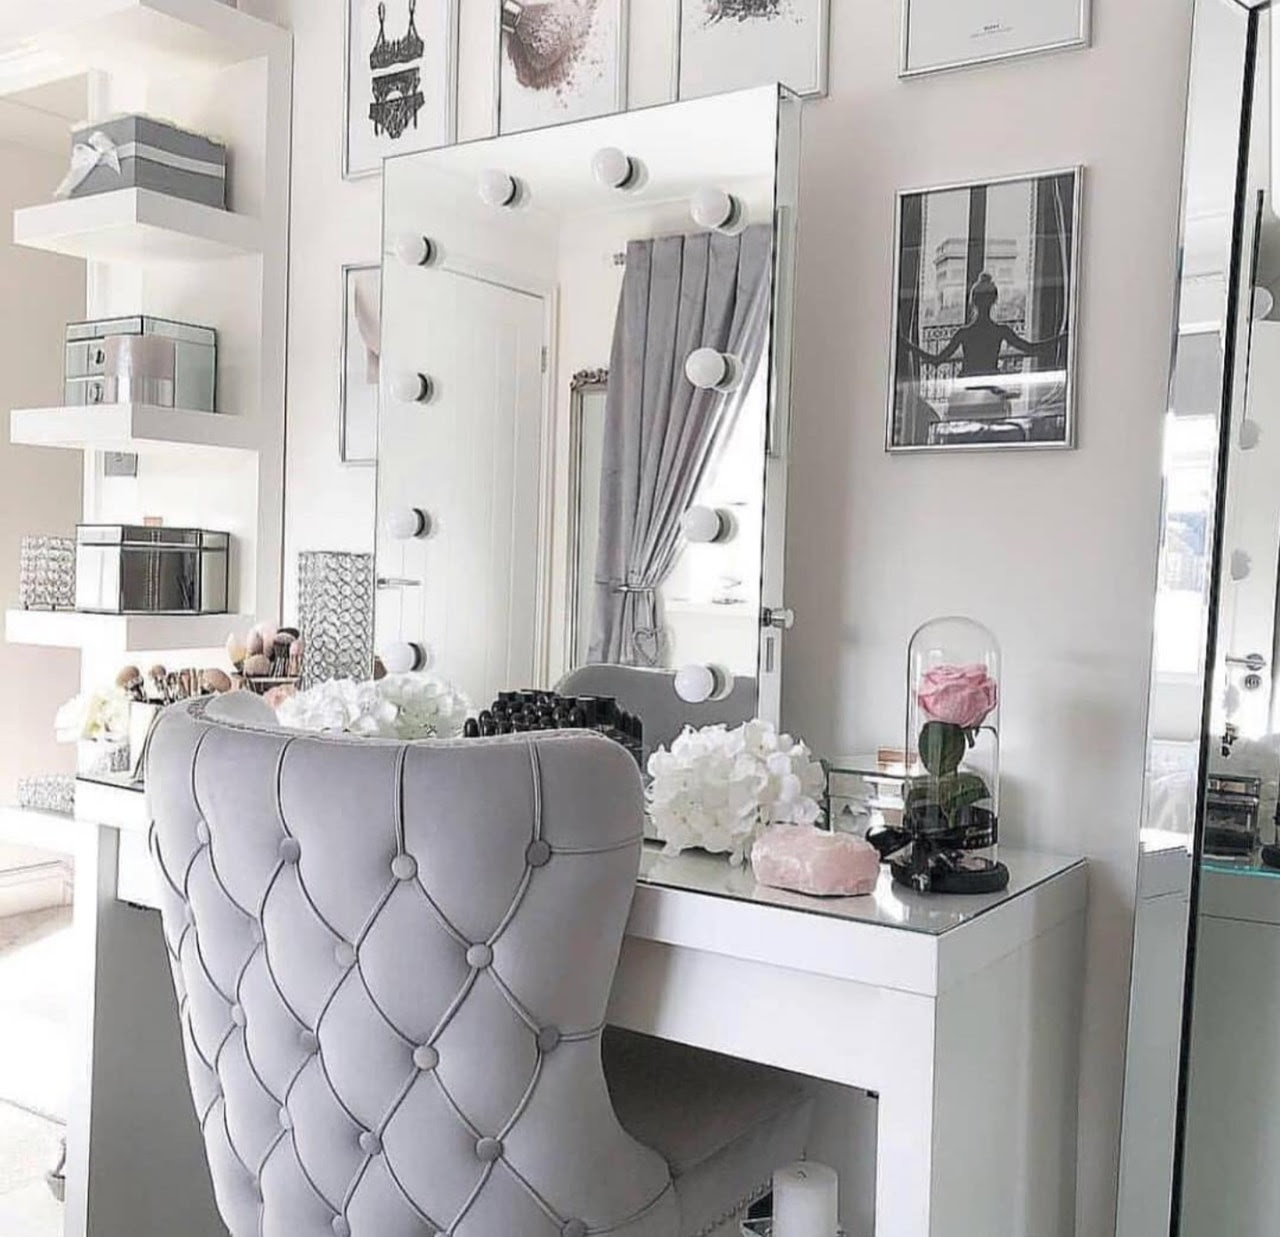 inspiration, makeup room inspiration, home and makeup room - image